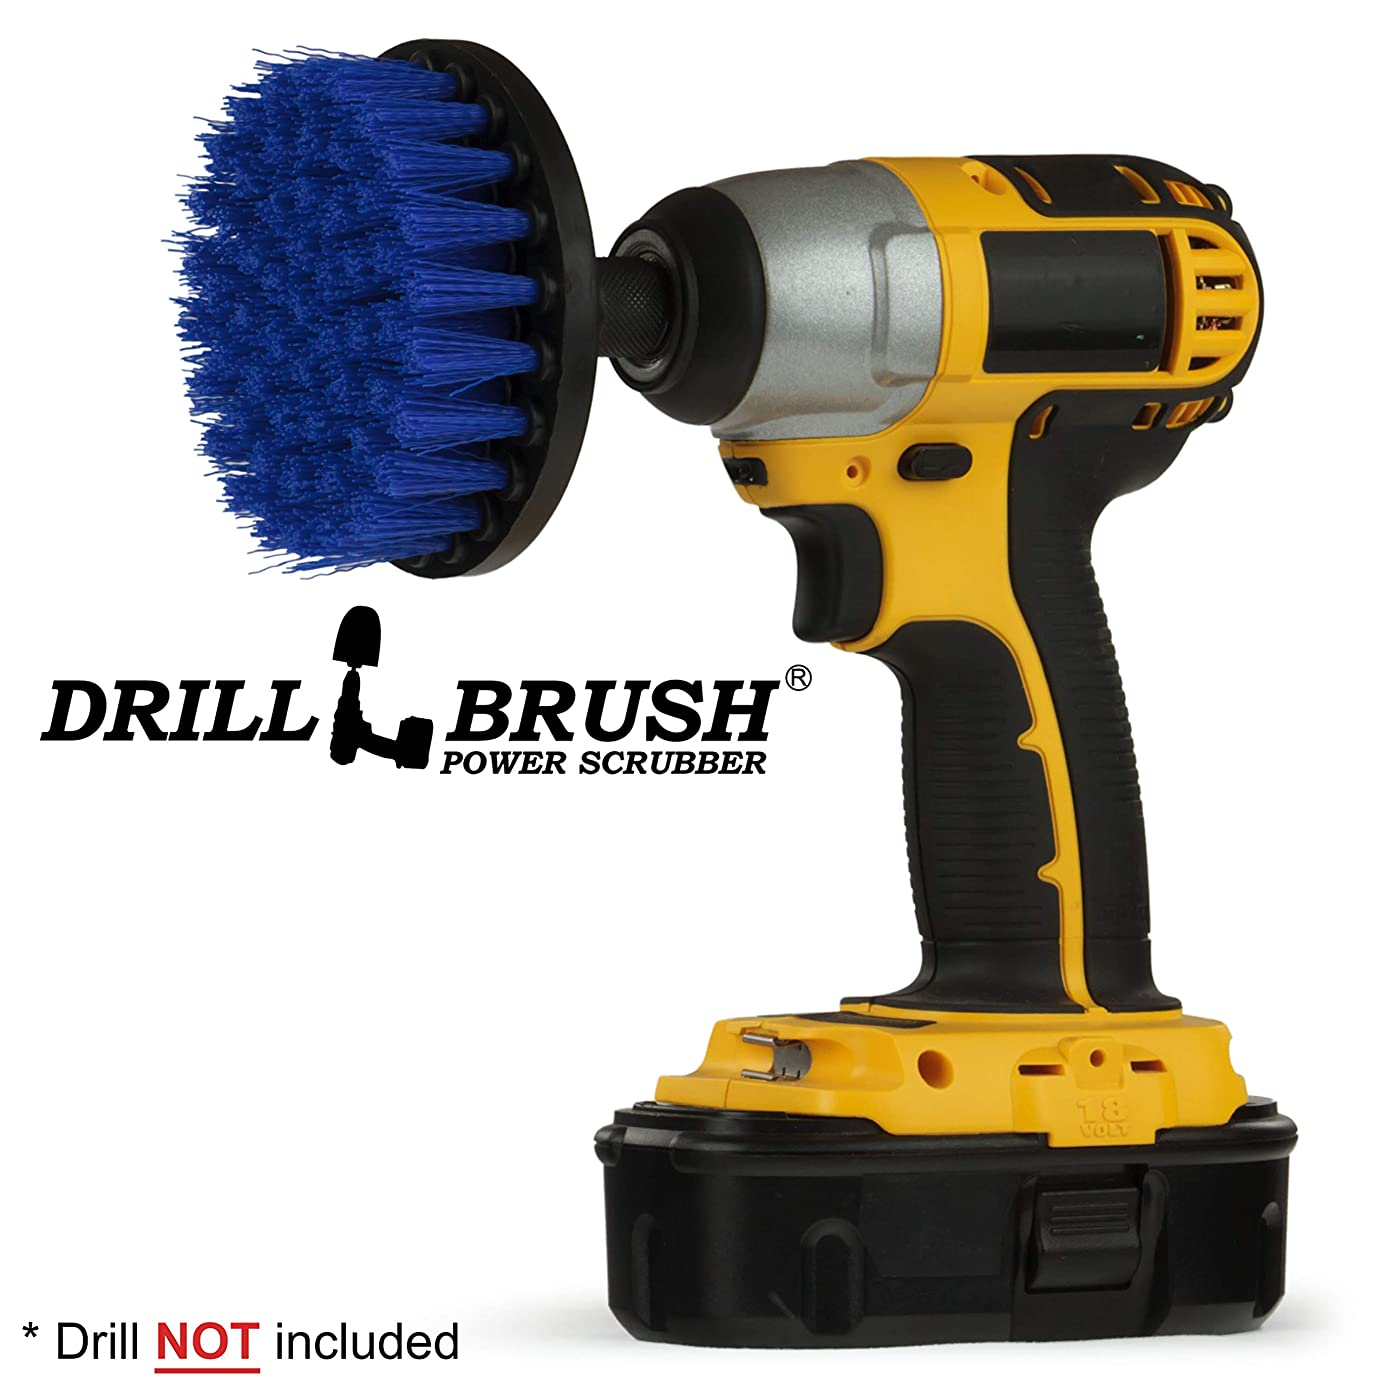 Boat Accessories - Marine - Drill Brush - 4 Inch Diameter Boat Brush - Yacht - Sail - Kayak - Canoe - Jet Ski - Pontoon - Deck Brush - Carpet Cleaner - Fiberglass - Gel Coat - Aluminum - Spin Brush